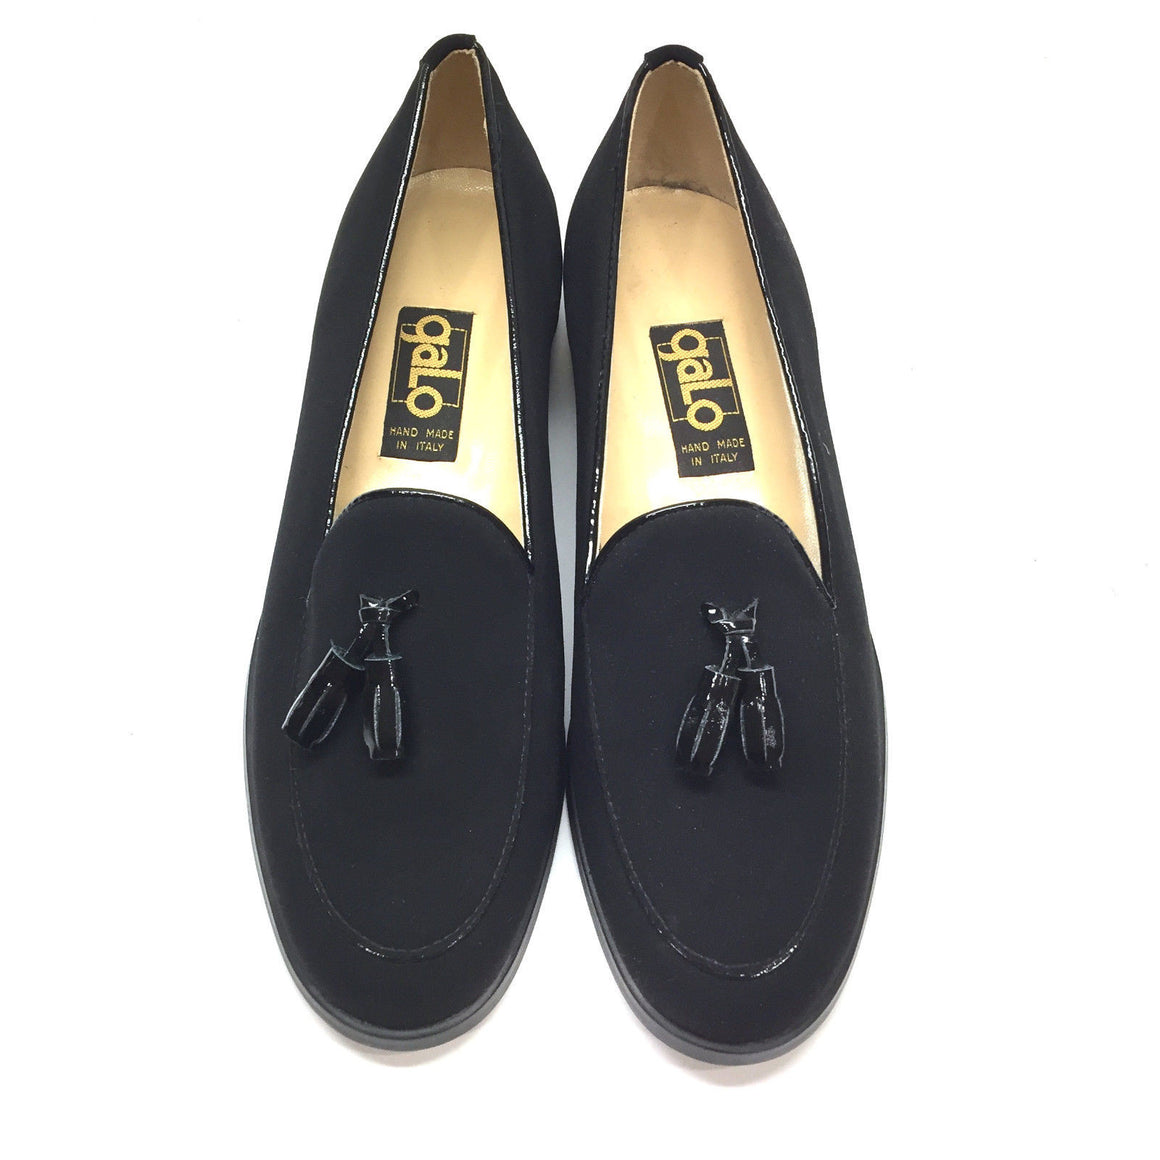 bisbiz.com GALO  Black Microfiber Patent Leather Tassel Loafers Flats Shoes  Size: 36.5/6.5 - Bis Luxury Resale